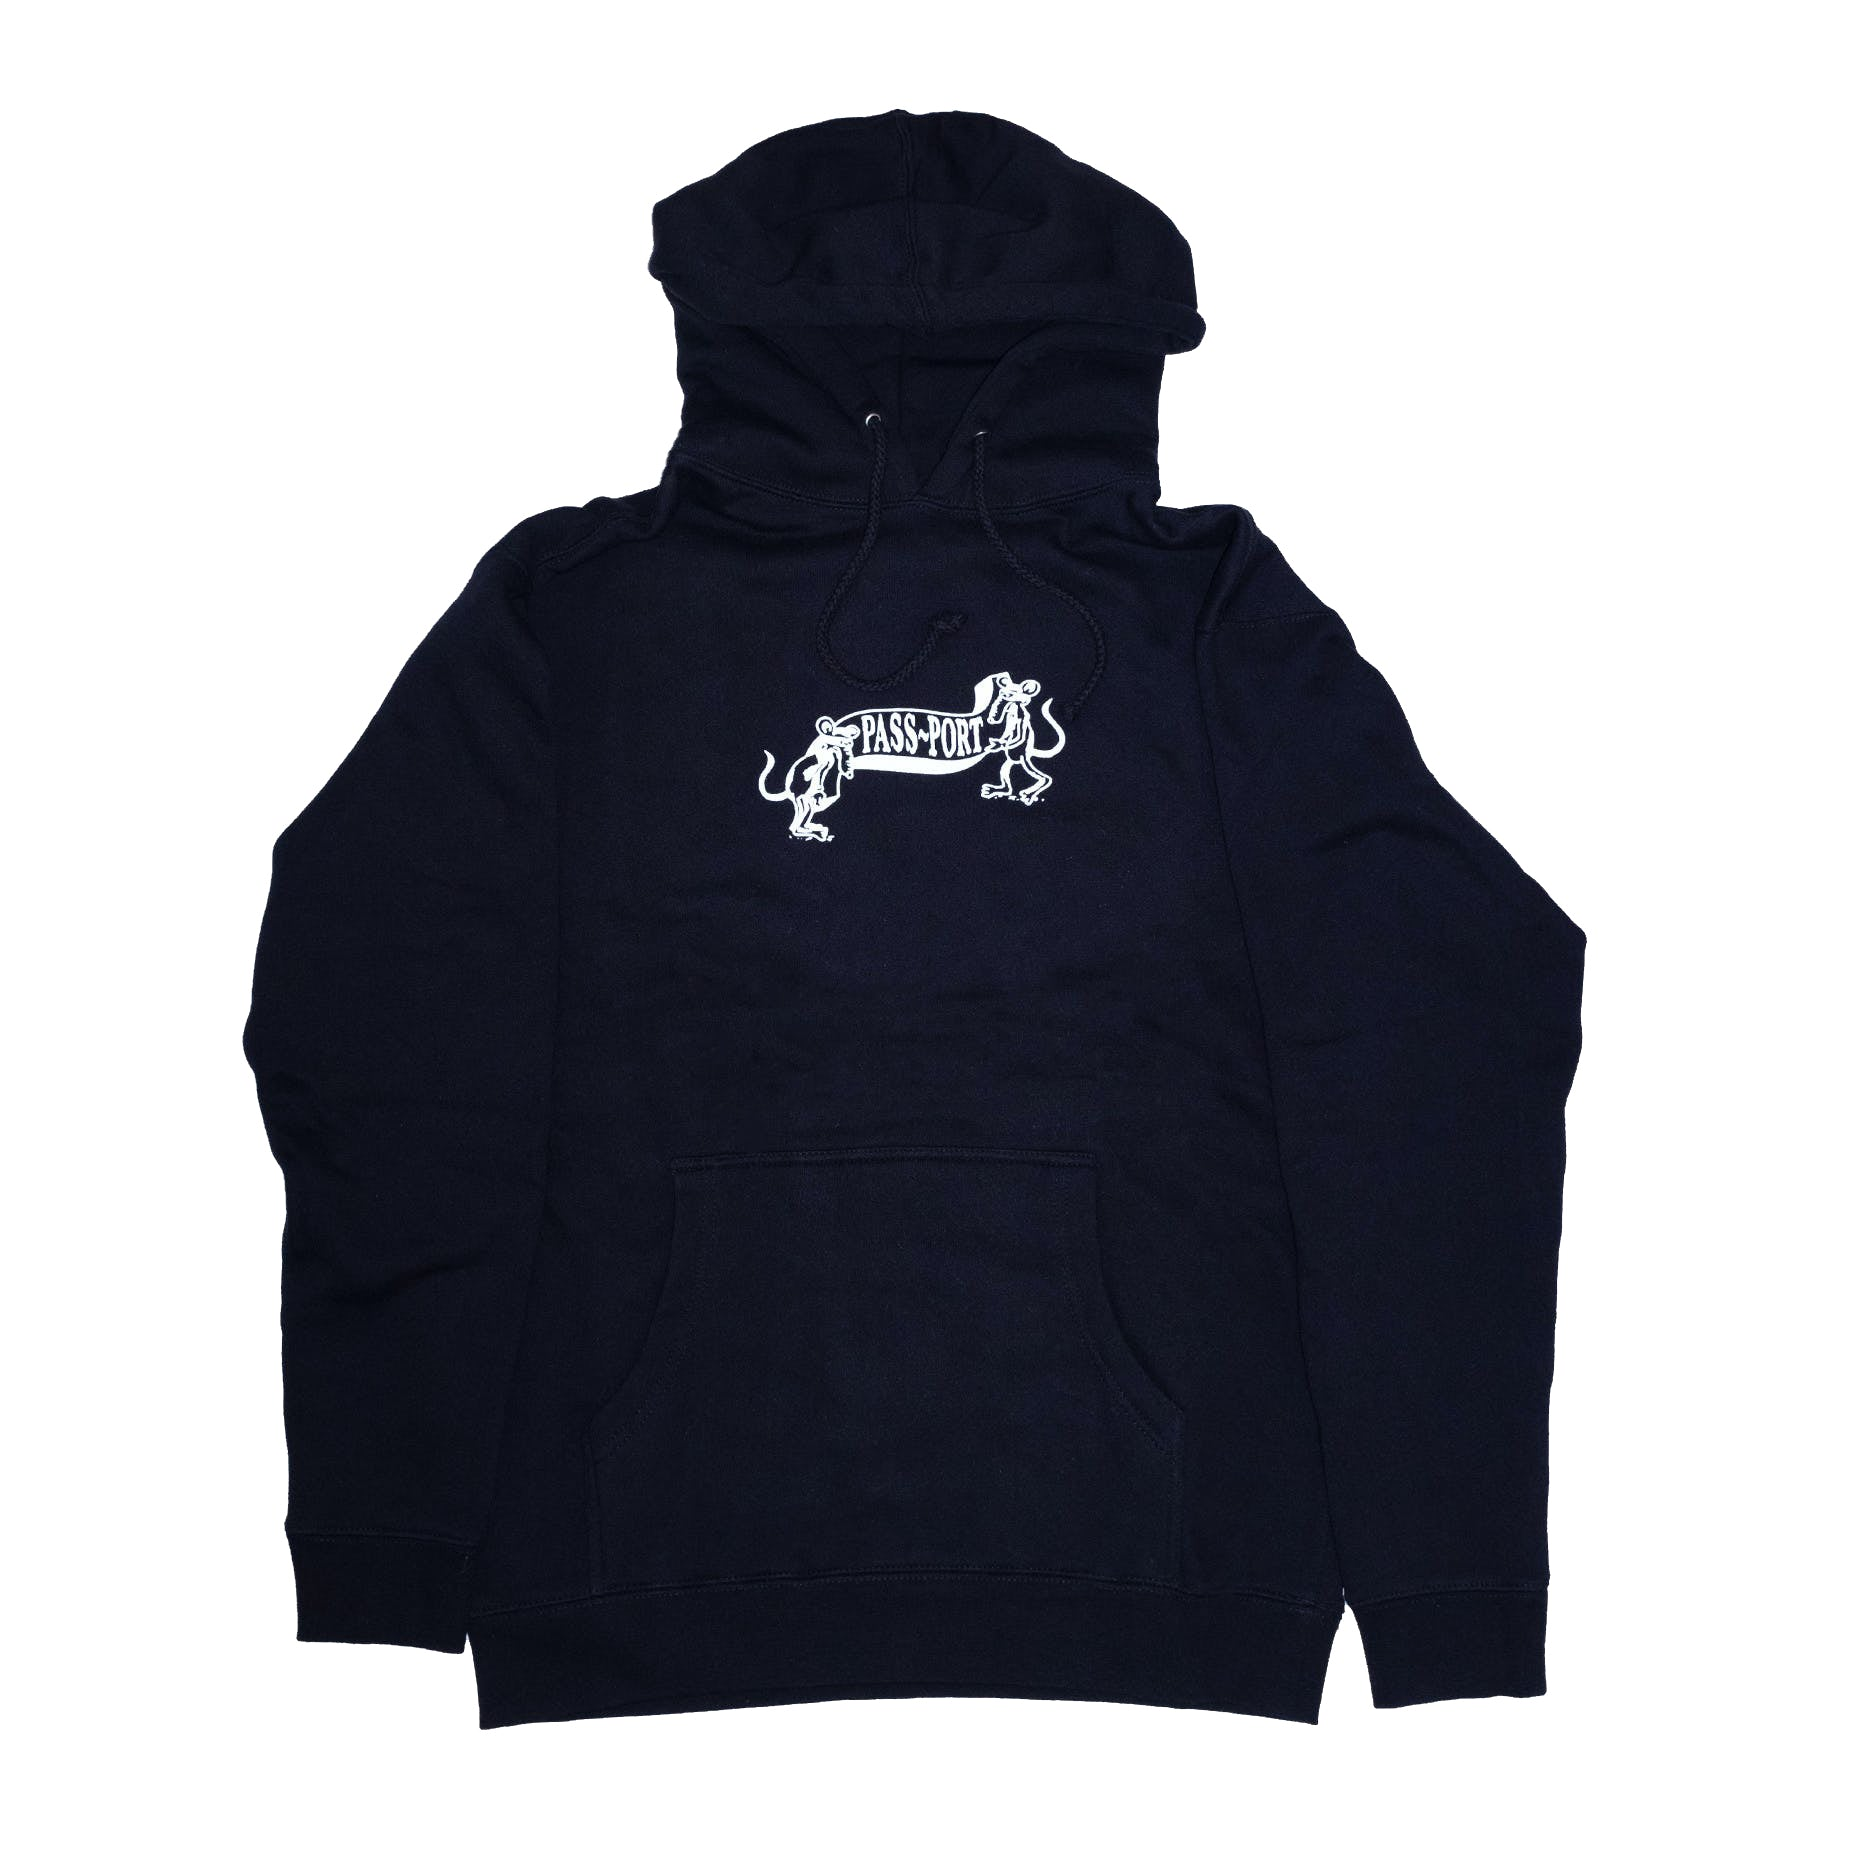 Passport Missing Tilde Hoodie - Black